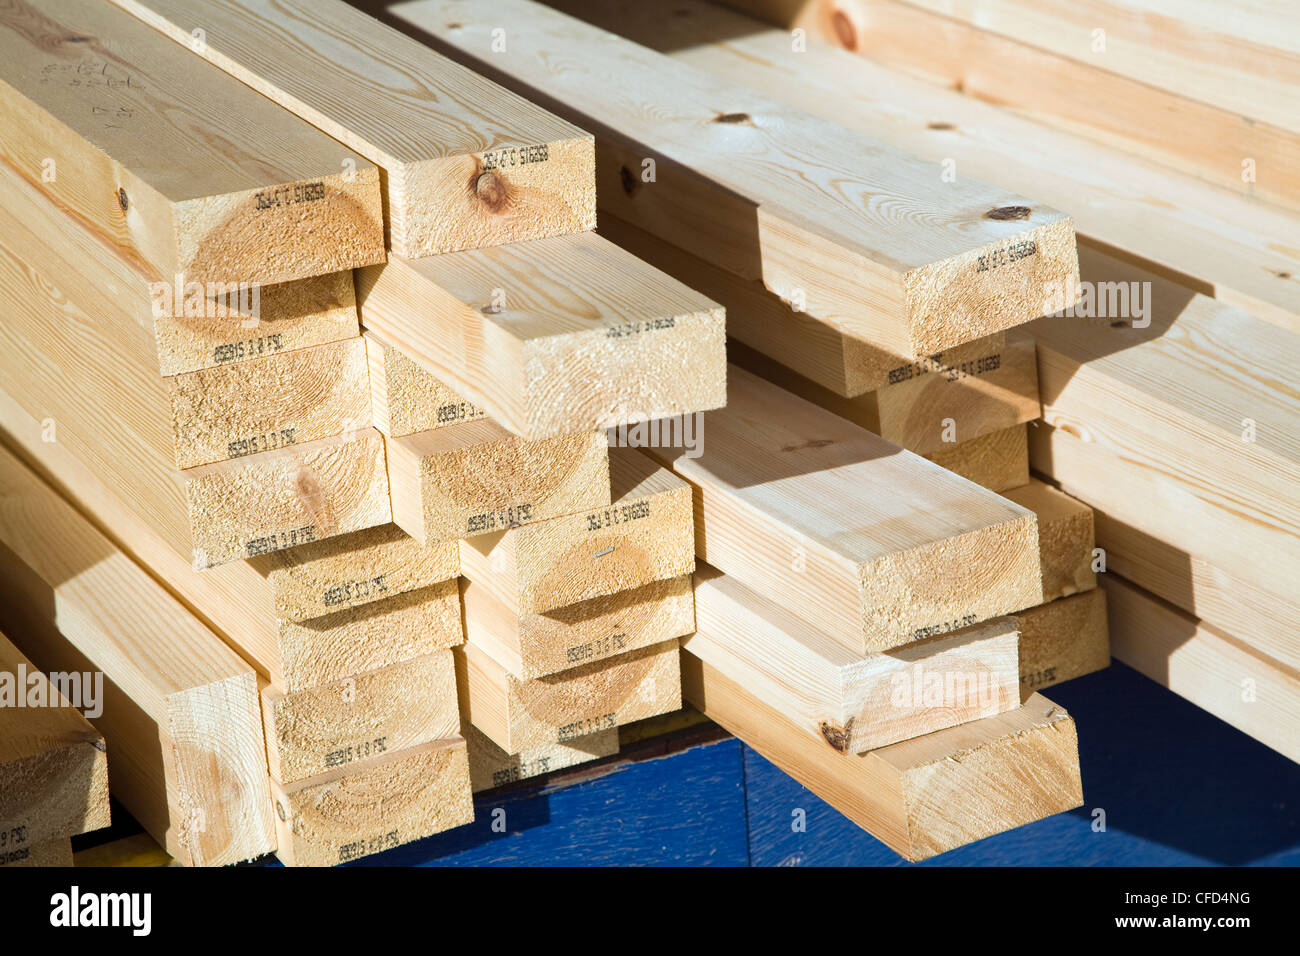 Ends of wooden planks in builder's yard - Stock Image